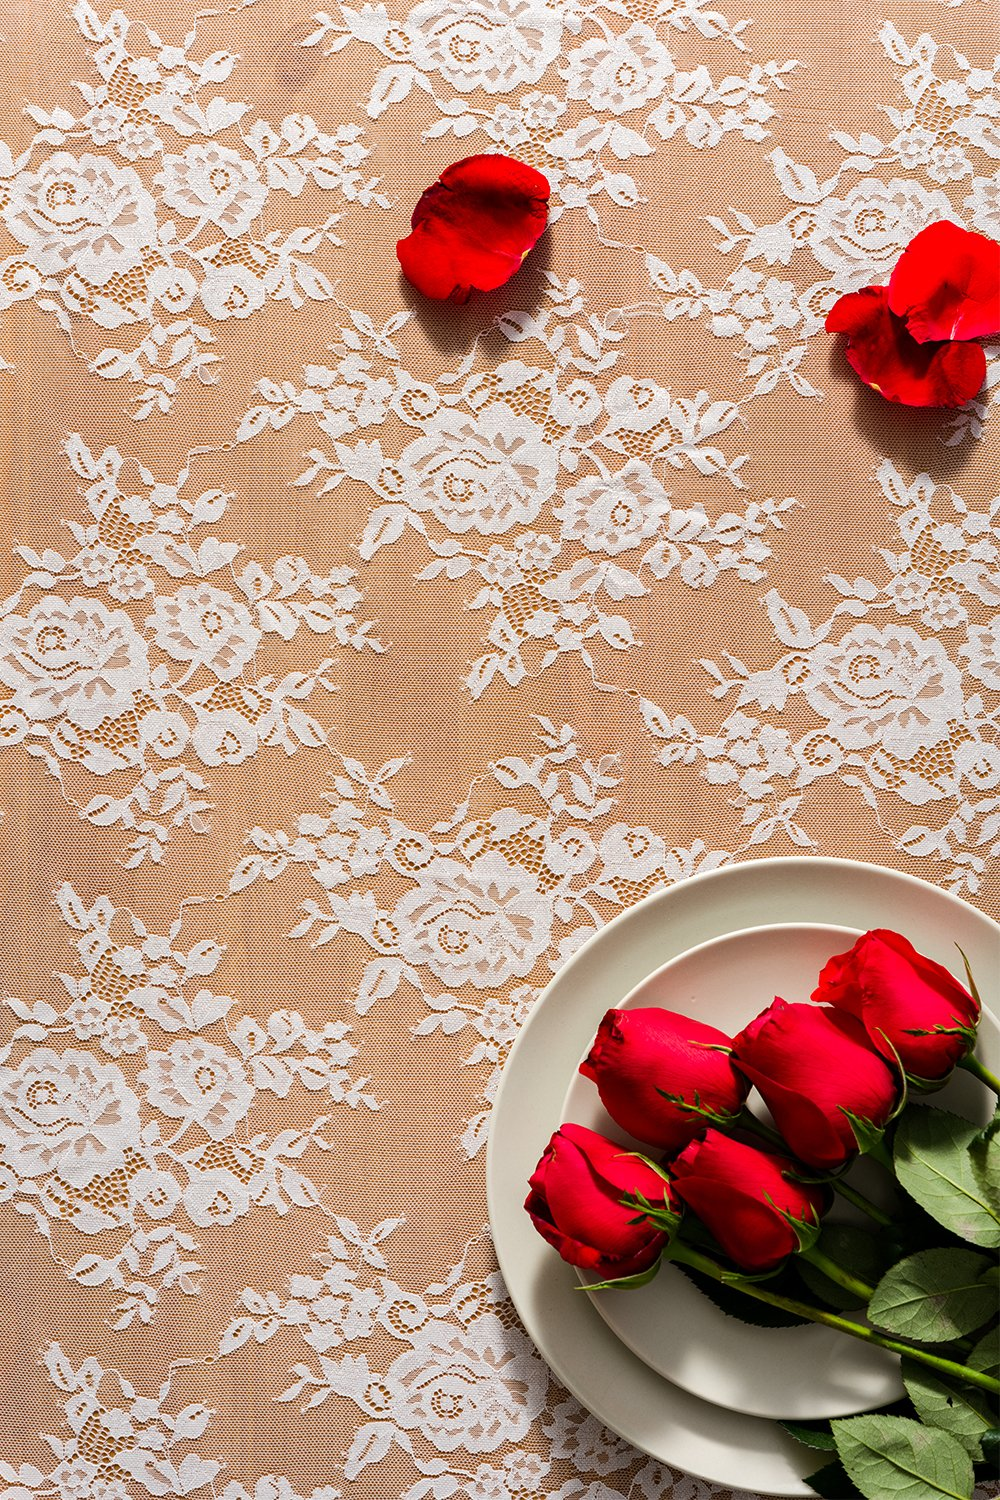 Spring Summer Vintage Garden Tea Party Decor Crisky 30 x 120 Lace Table Runners for Weddings Lace Overlay Bridal Shower Decoration